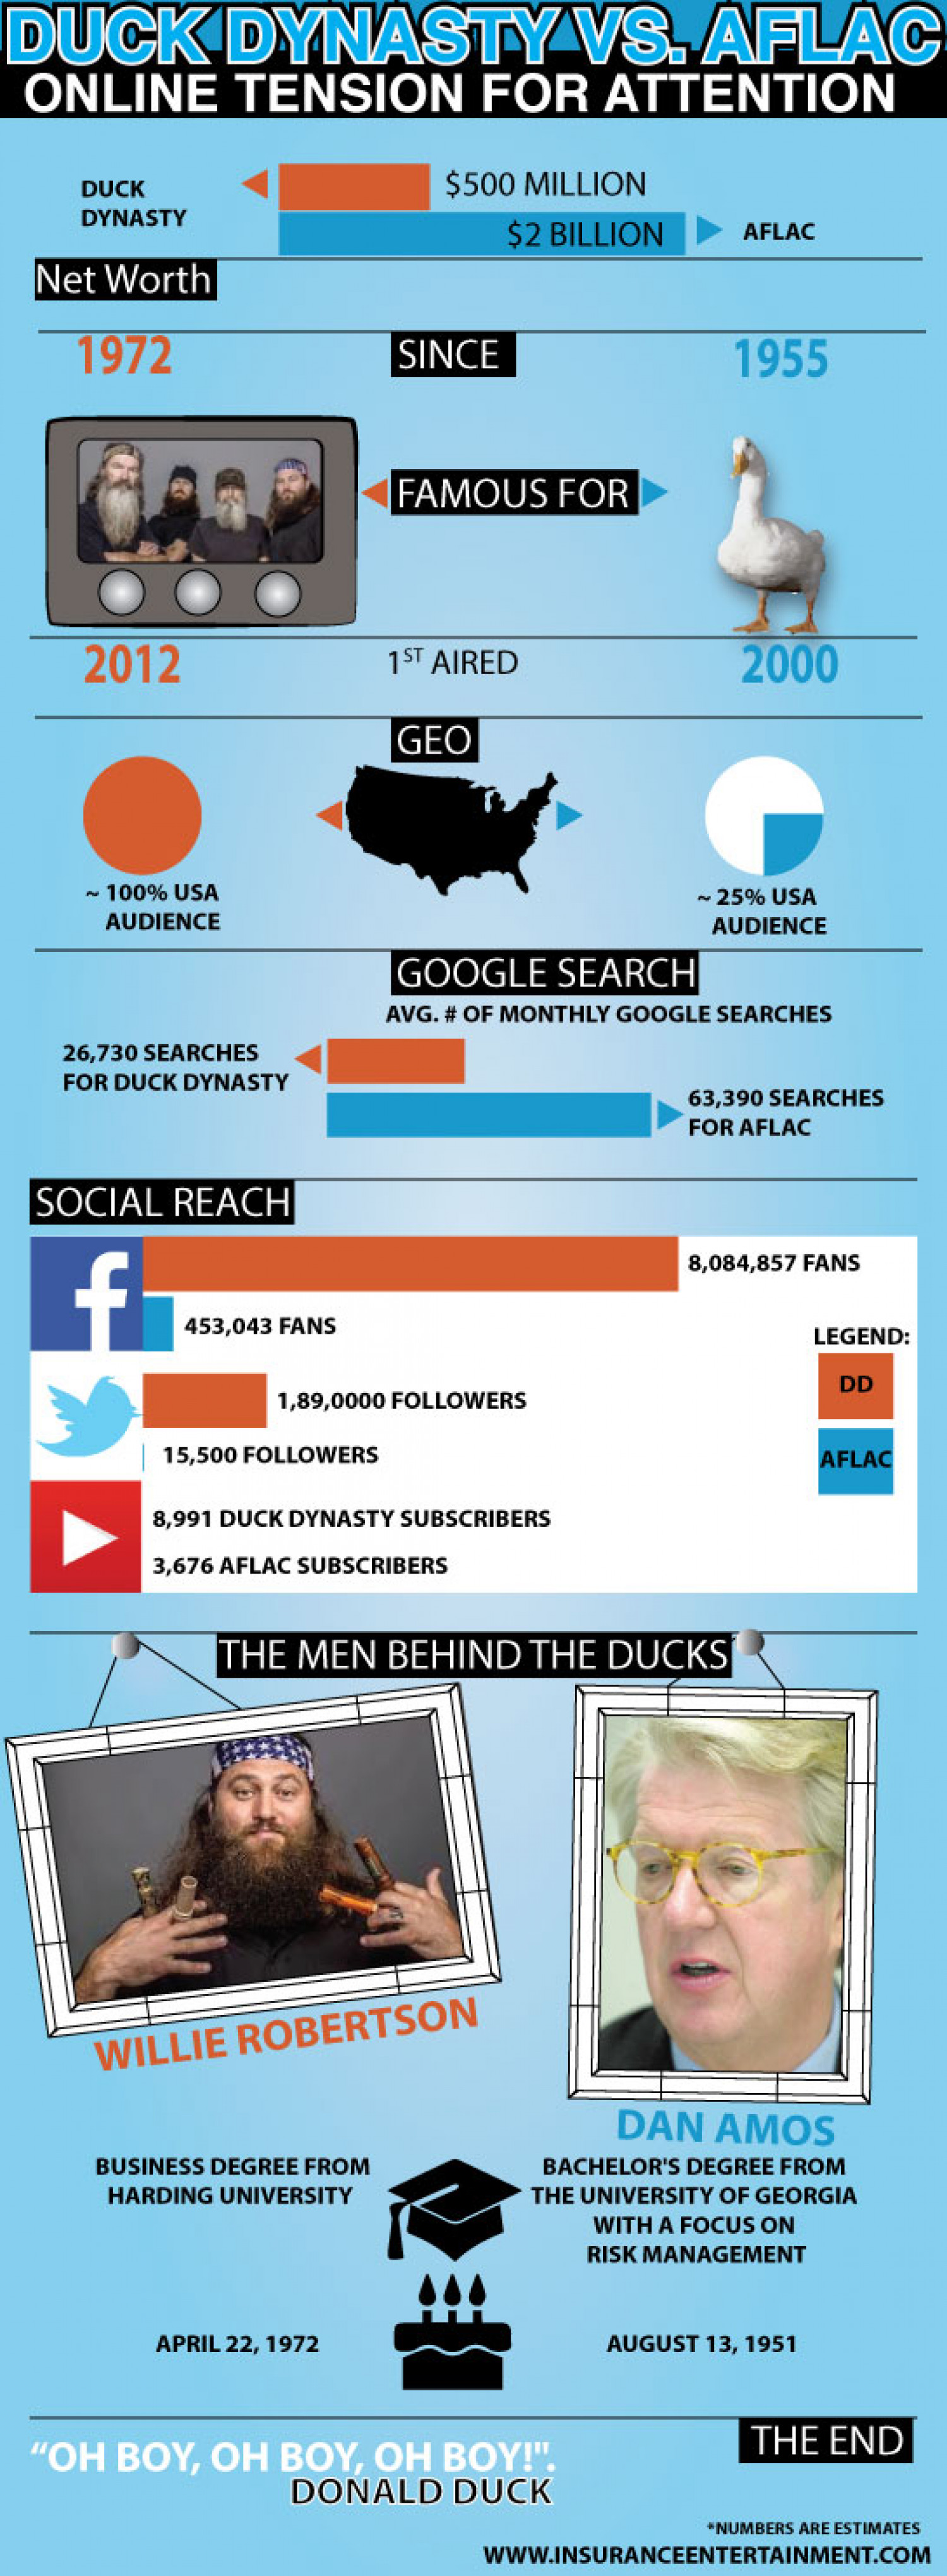 Duck Dynasty vs. Aflac Infographic